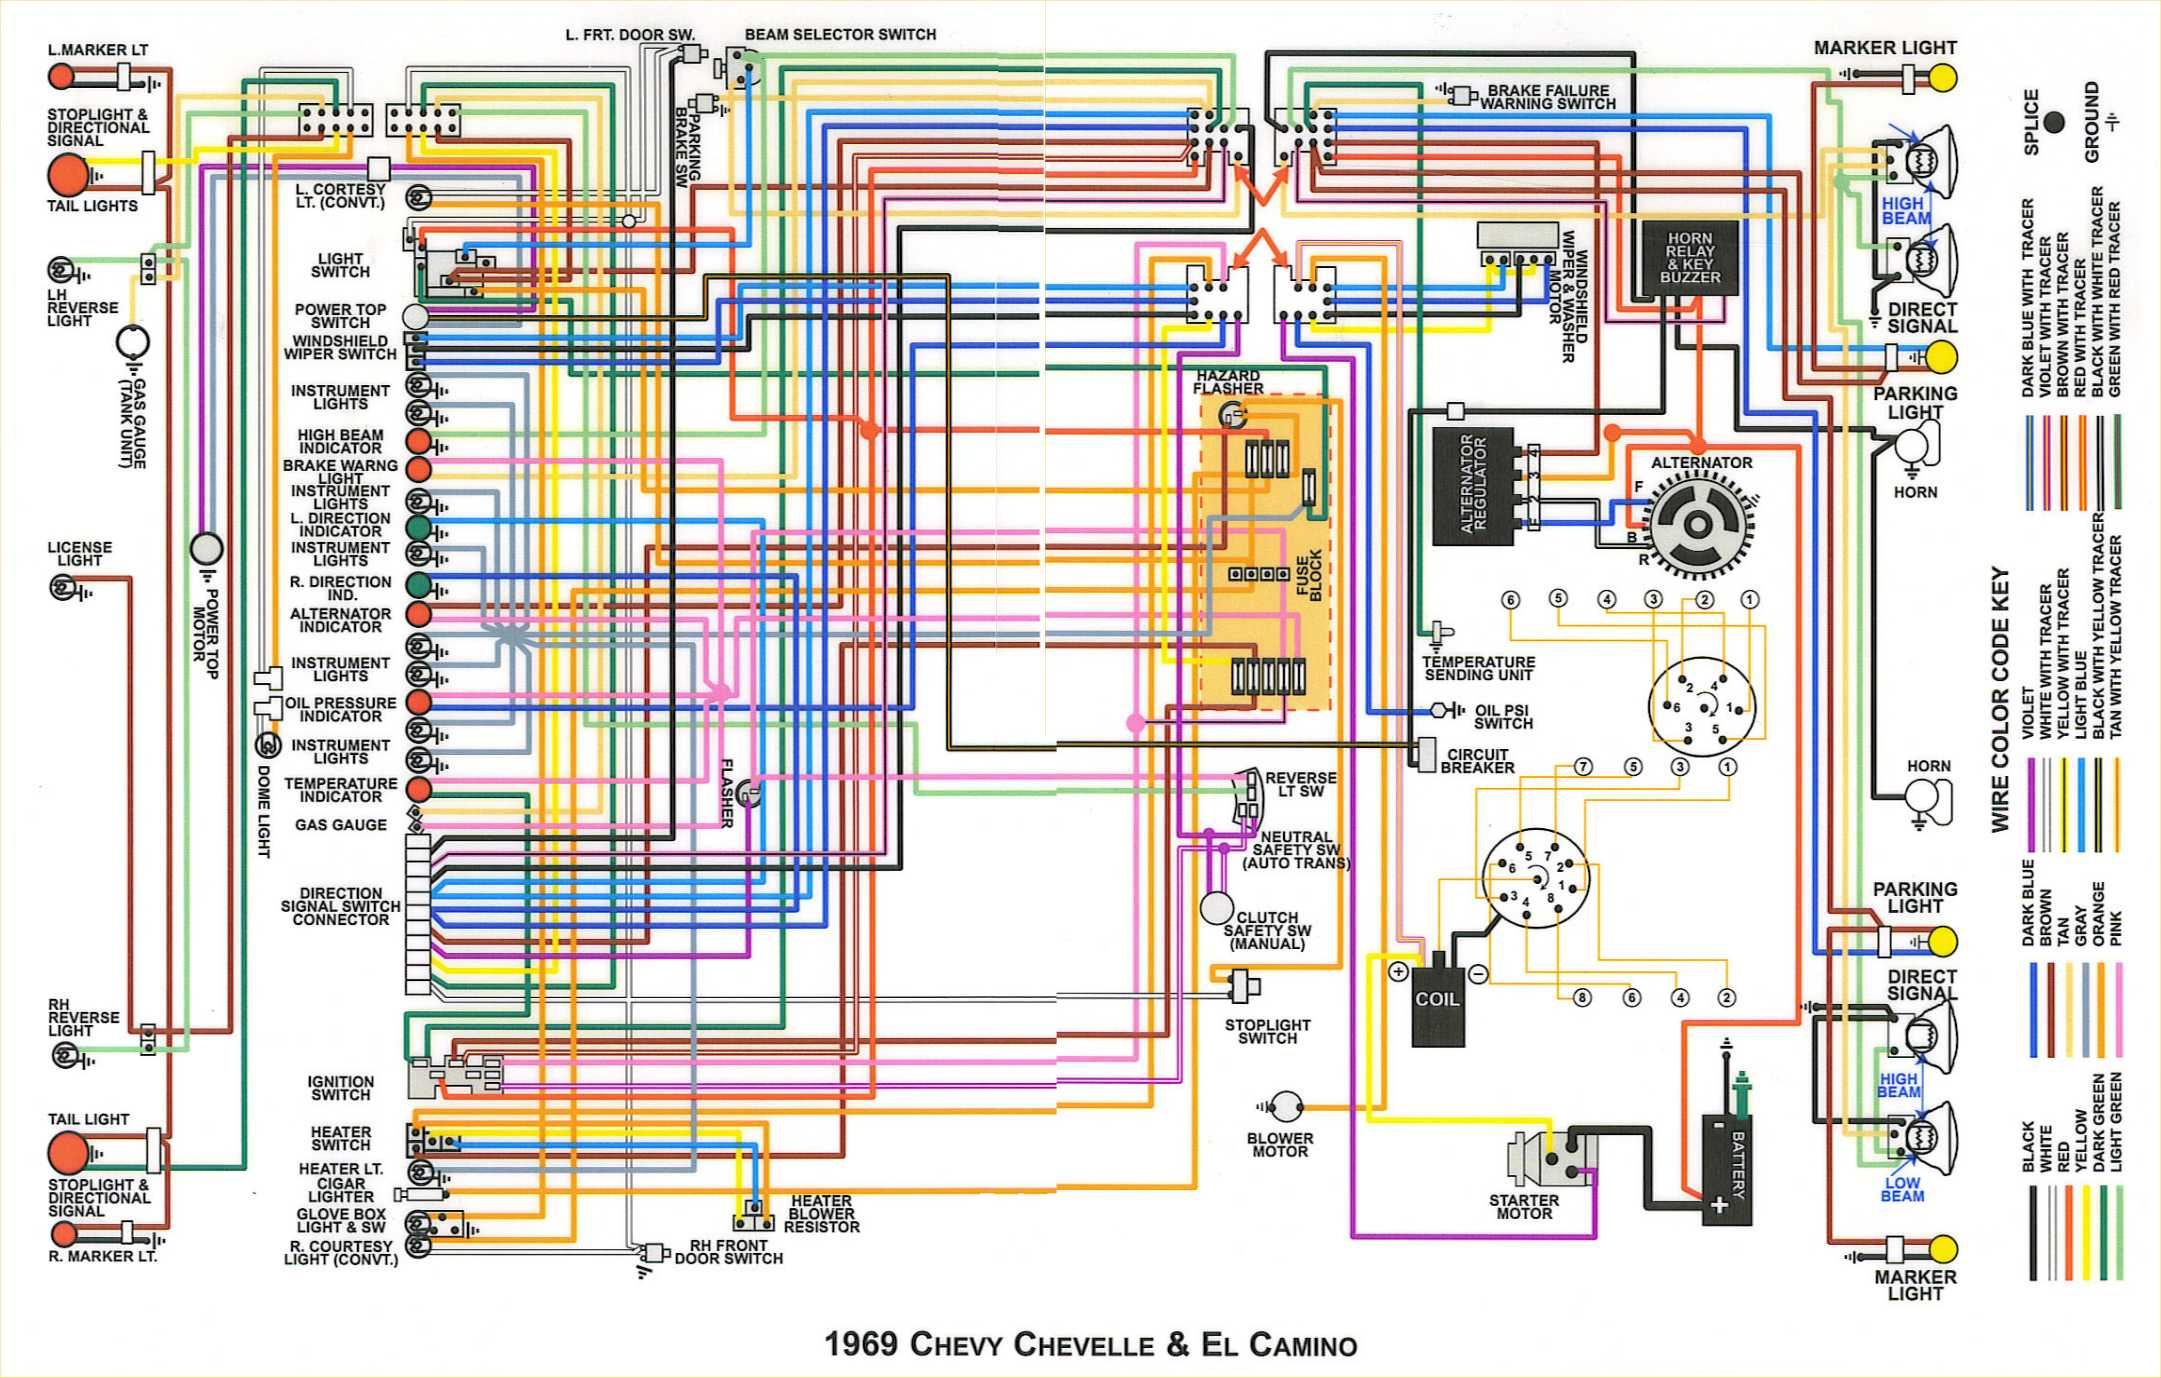 [SCHEMATICS_4JK]  Windshield wiper wiring 1966 Chevelle | Hot Rod Forum | 1966 El Camino Wiper Wiring Diagram |  | Hotrodders.com